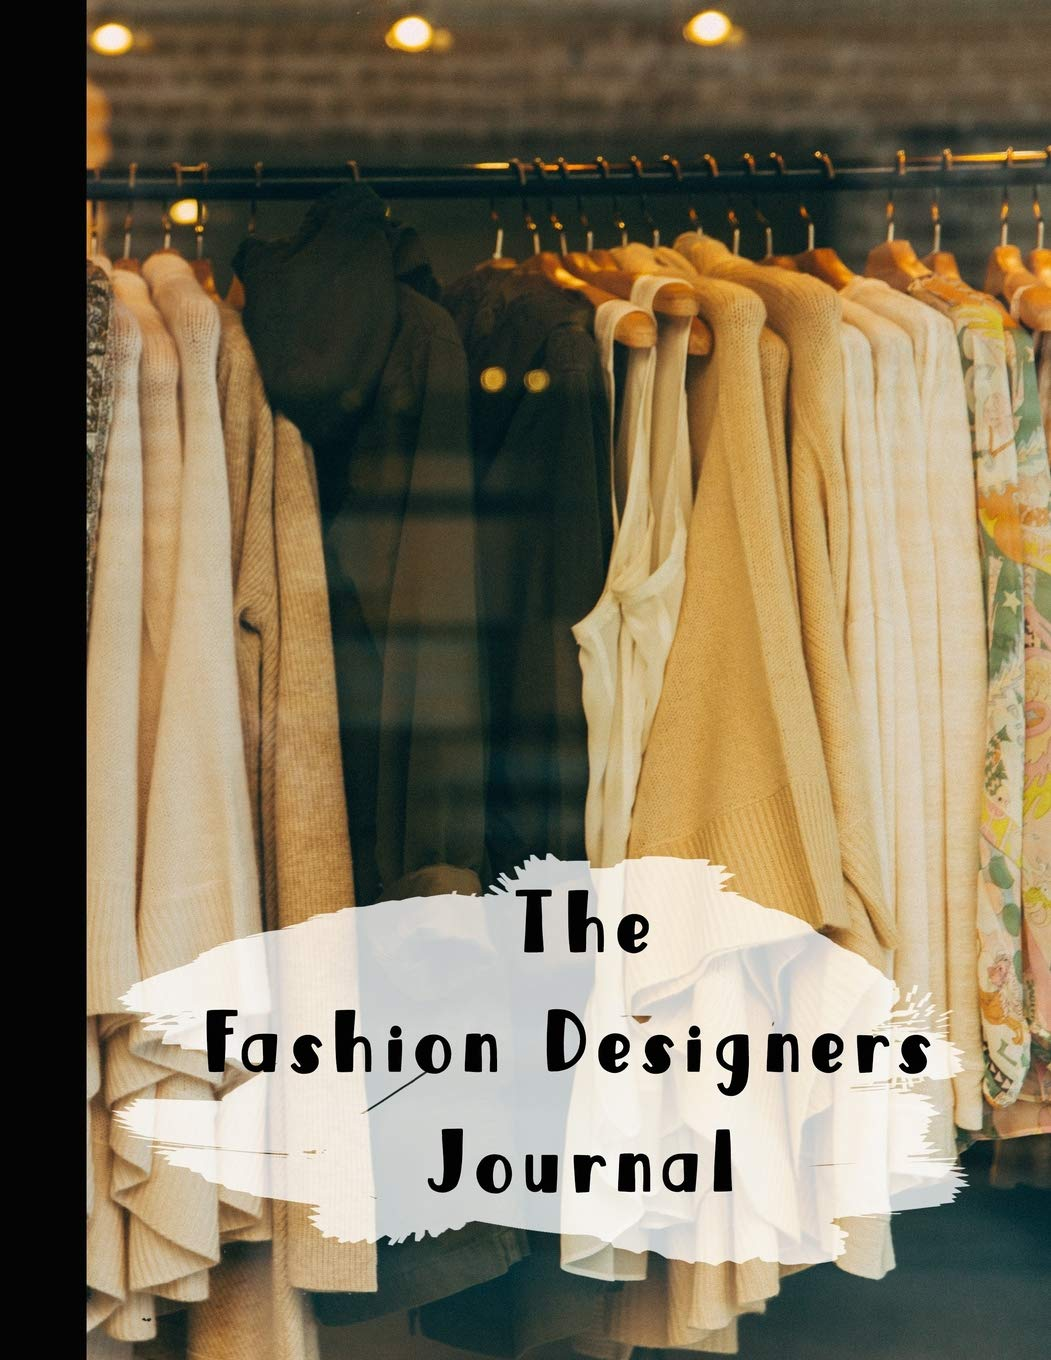 The Fashion Designers Journal Fashion Design Journal For Designing A Collection Rack Of Clothes Journals Thread And Paper 9781730990175 Amazon Com Books